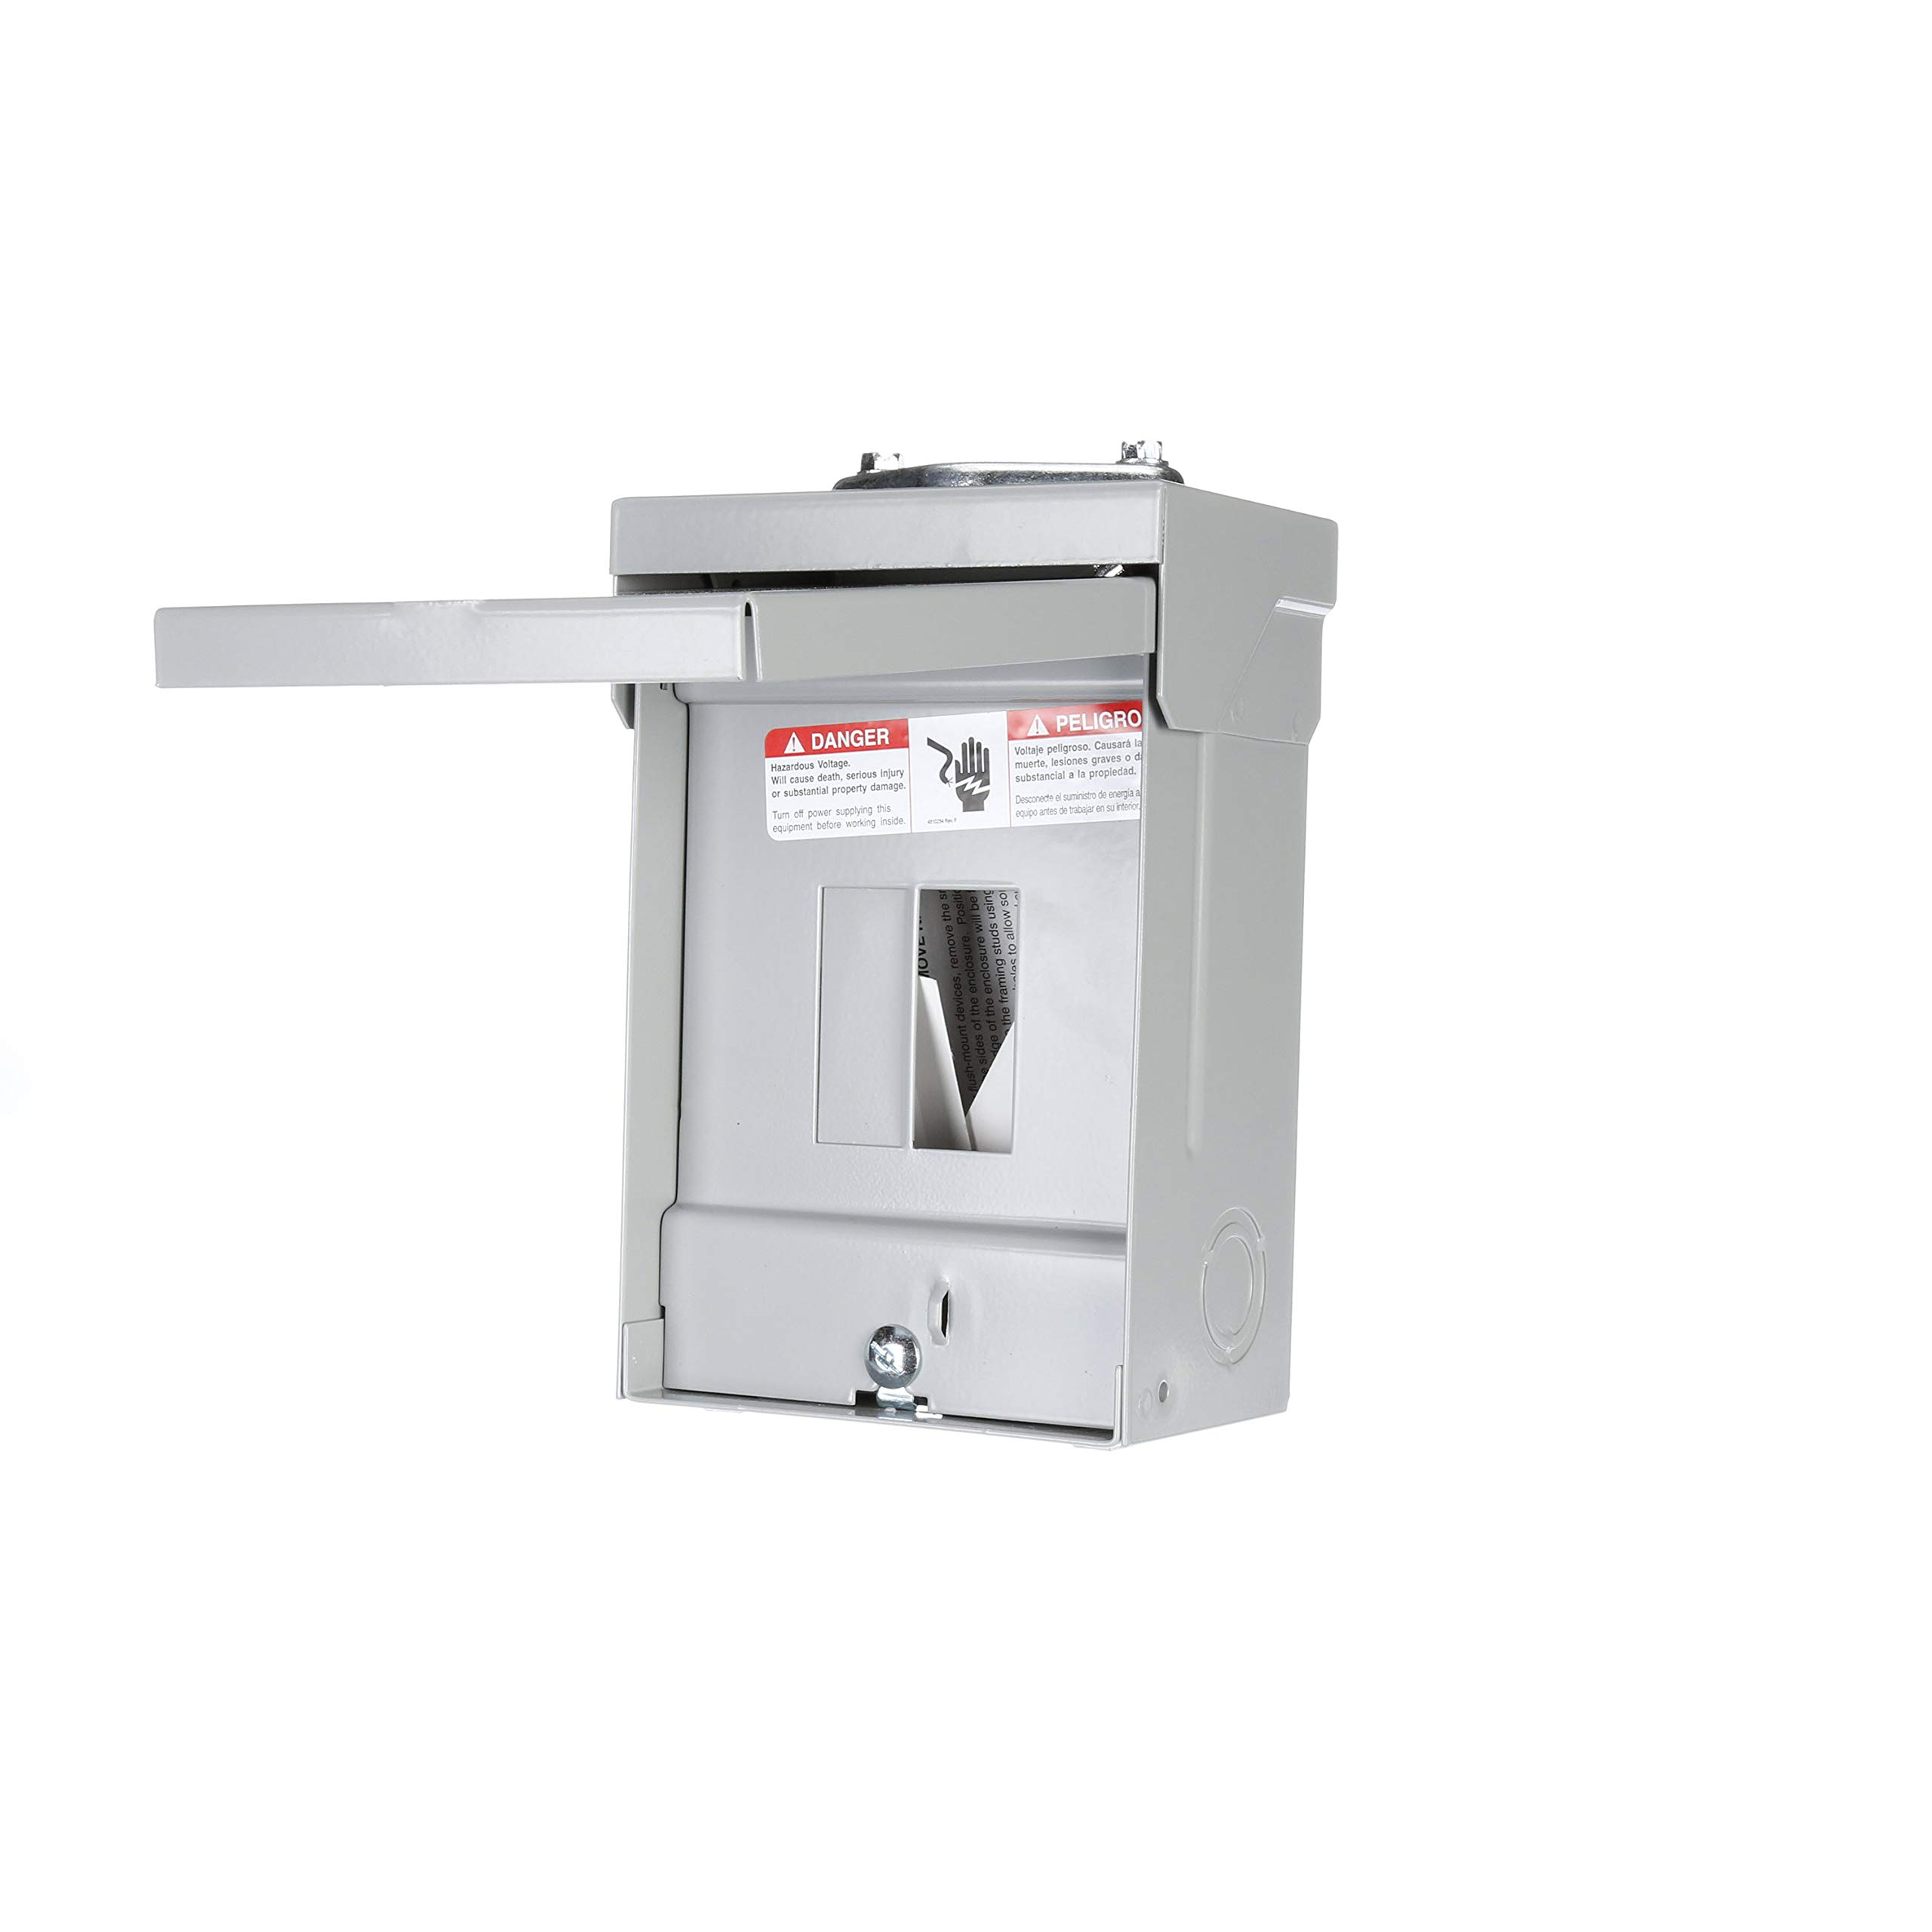 Best Rated In Circuit Breaker Panels Helpful Customer Reviews How To Turn On Off Main Breakers Video Murray Lw002gru 60a Enclosure Product Image